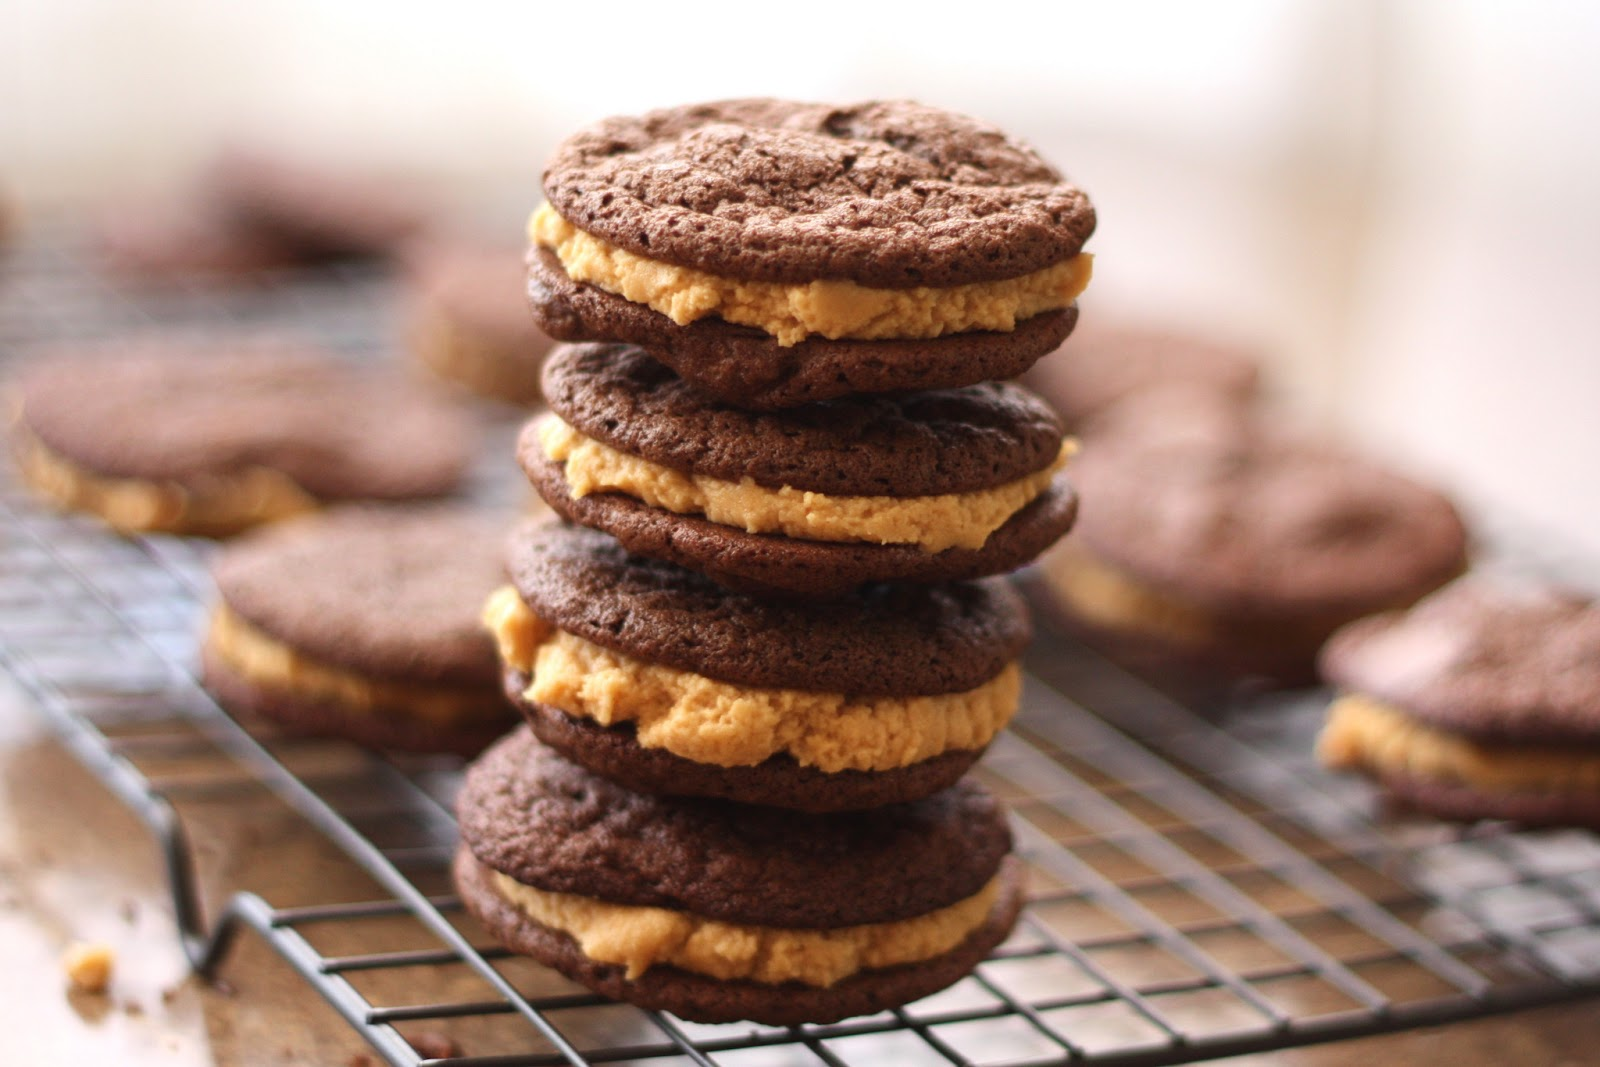 peanut butter cream sandwiched between dark chocolate sandwich cookies ...